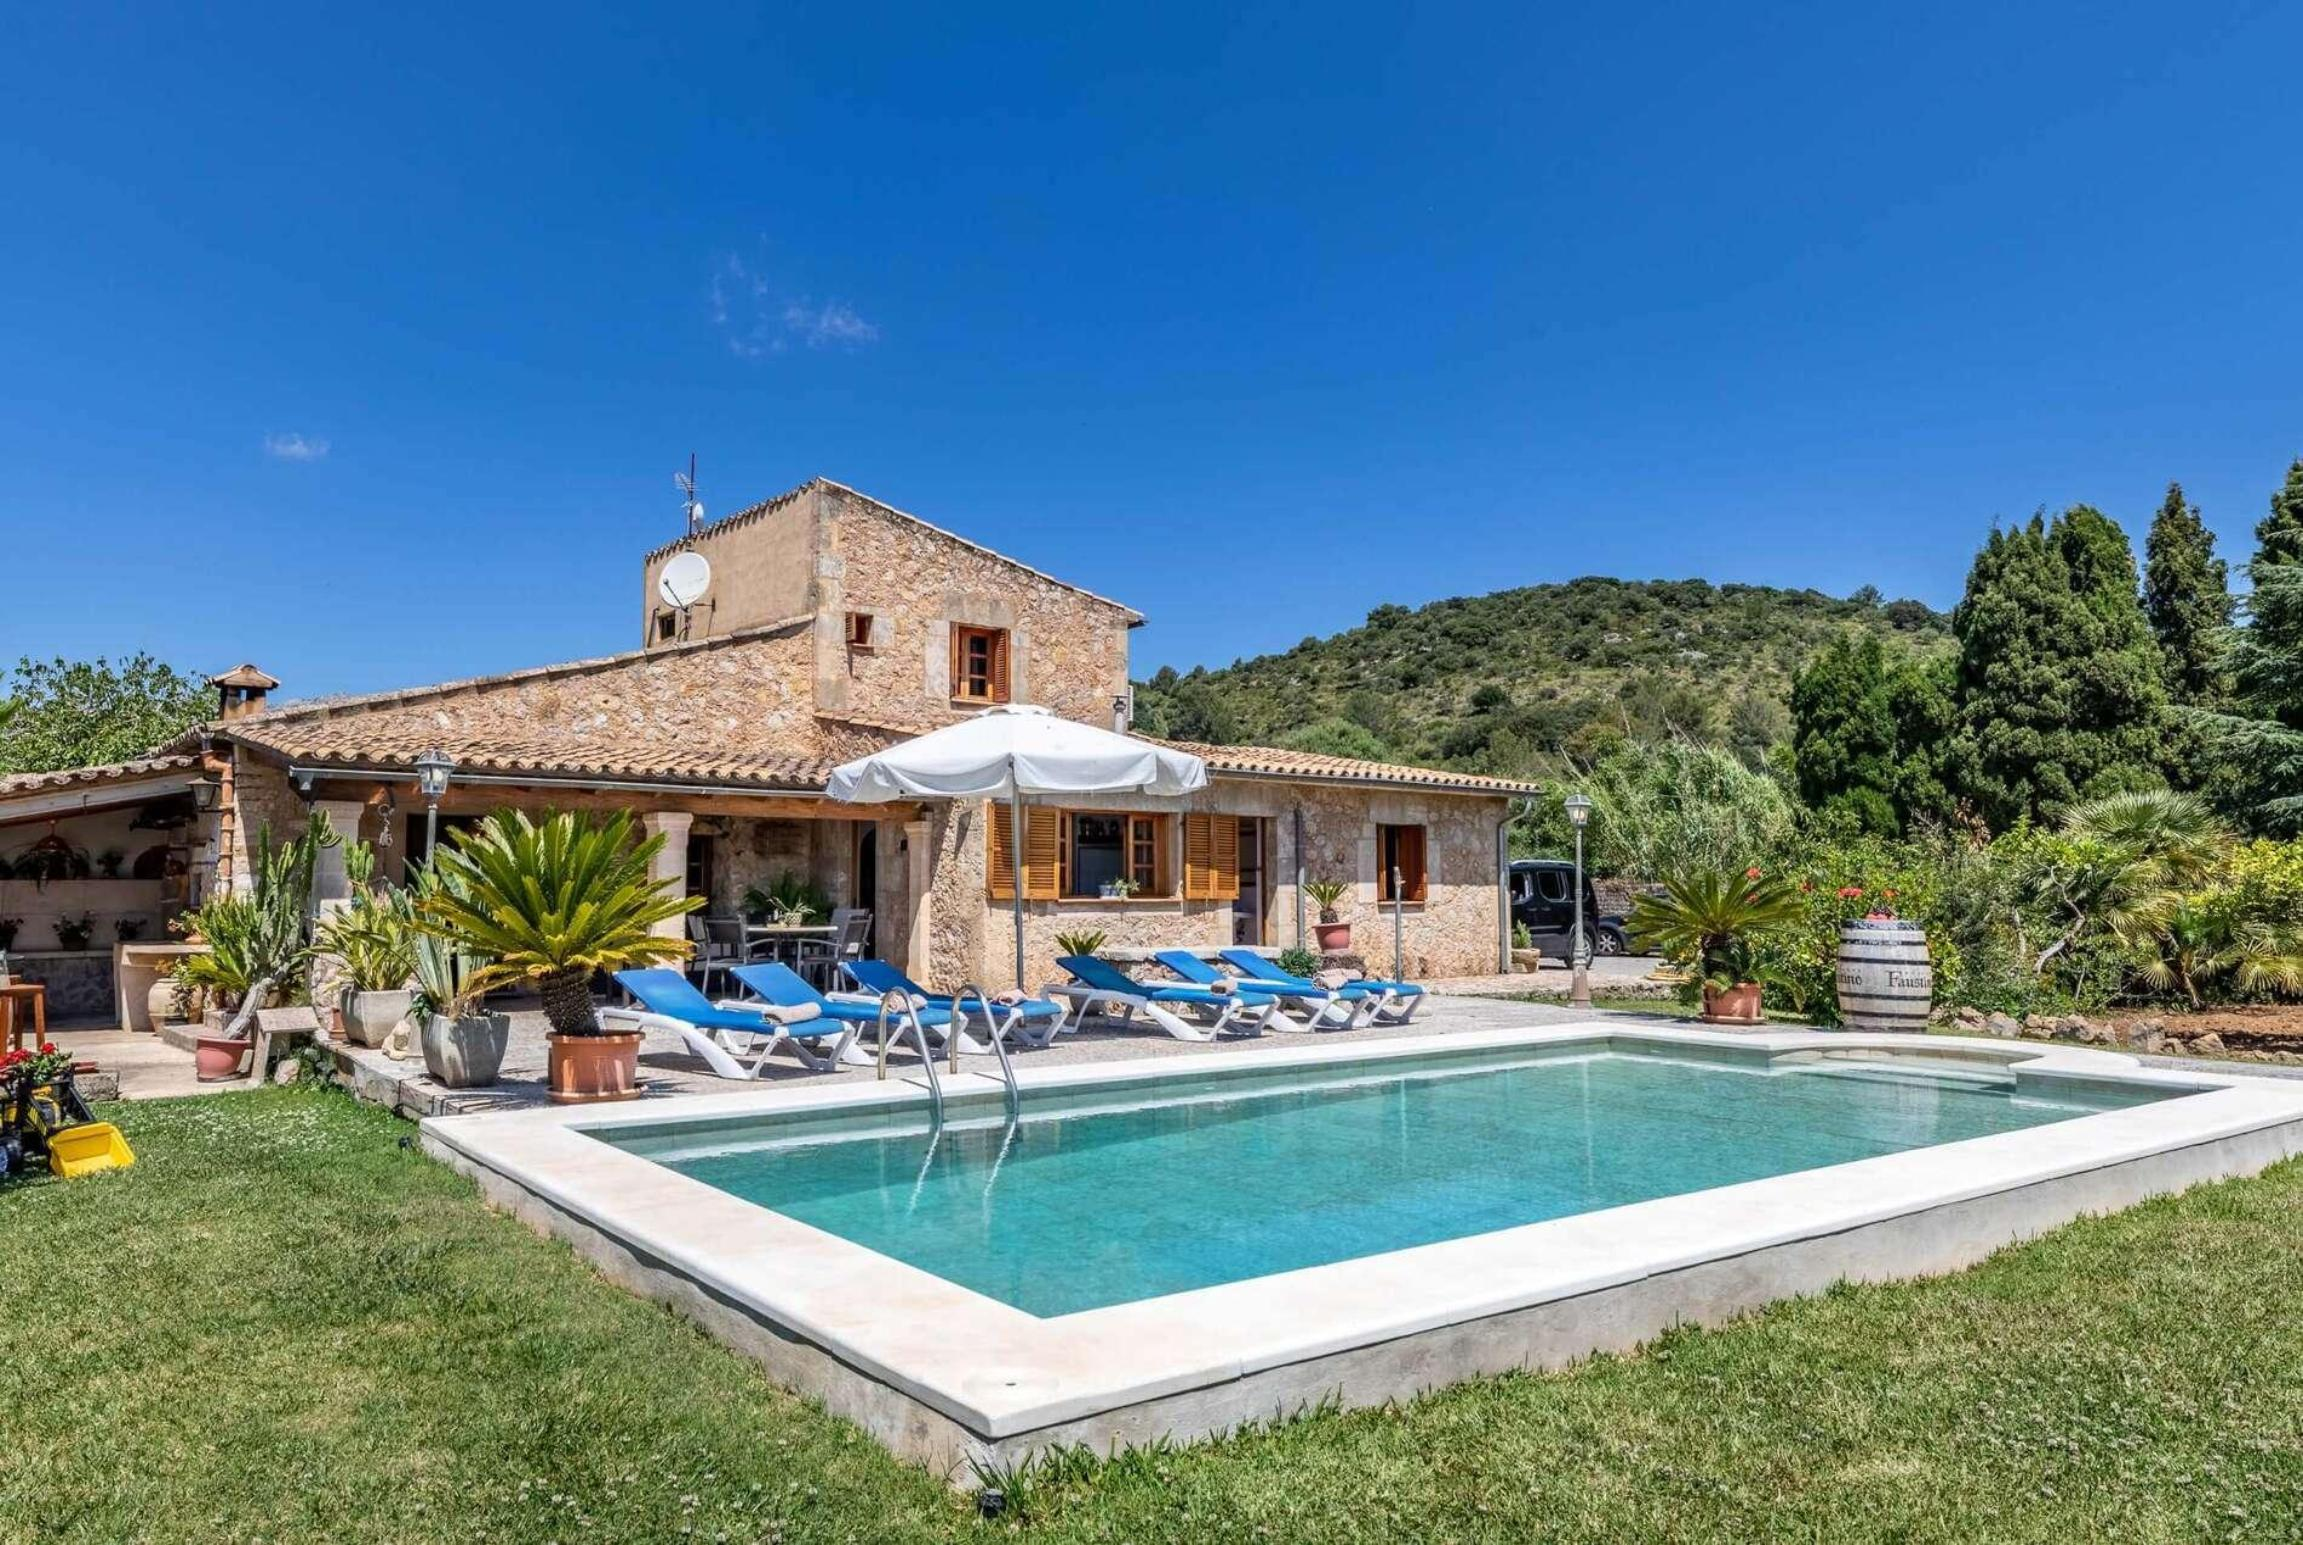 Read more about Can Coll villa